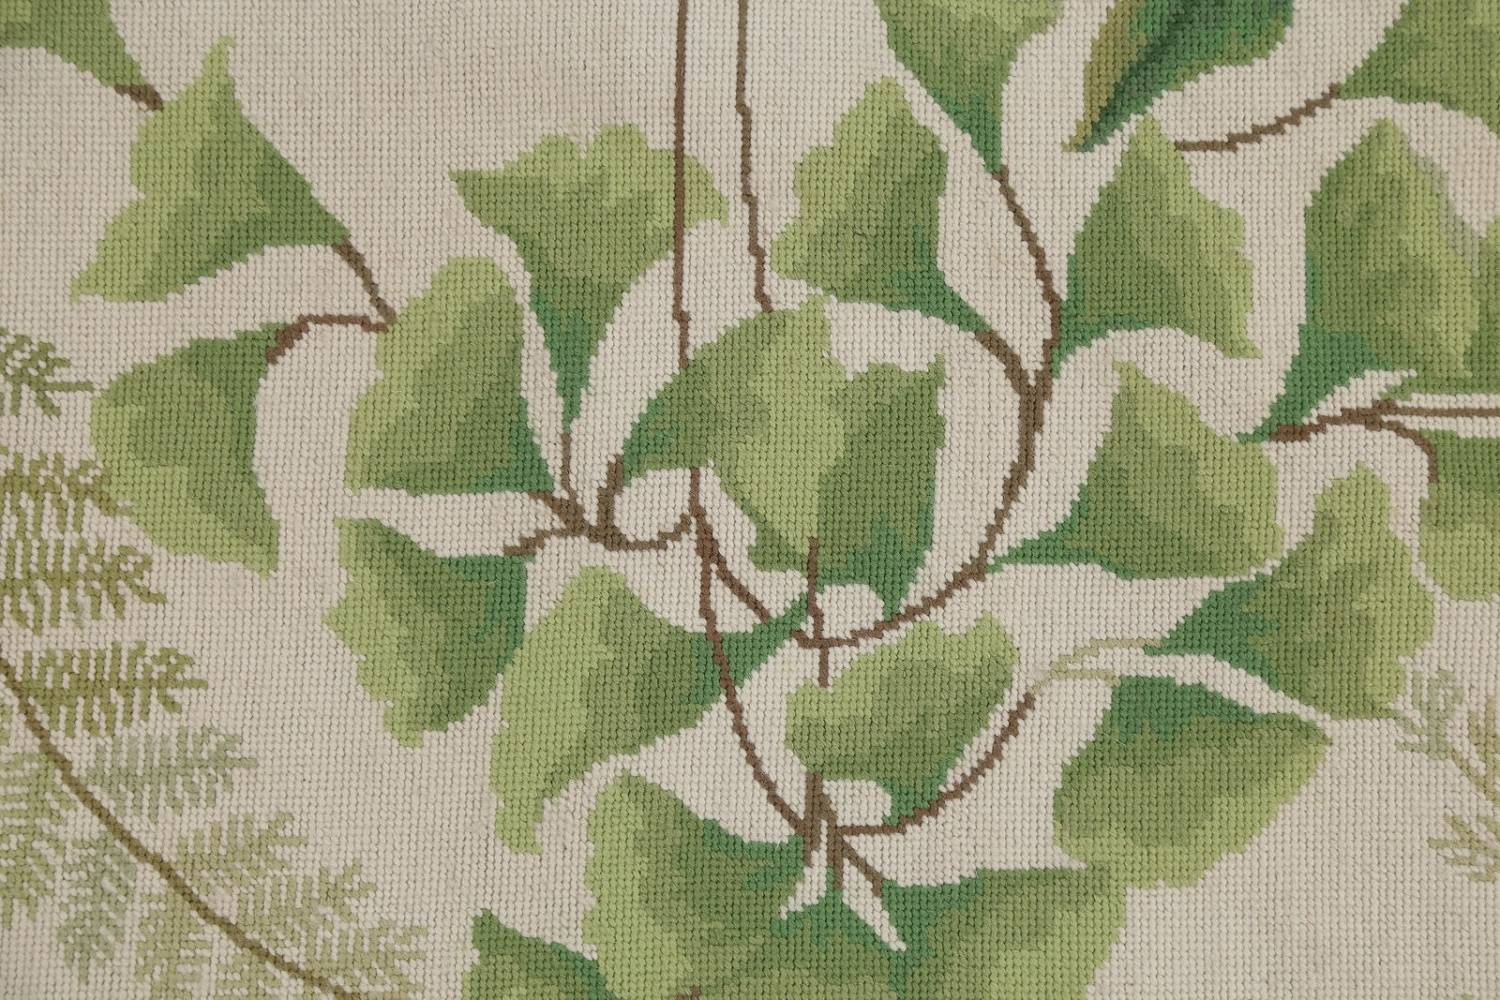 Mansion Floral Green Aubusson Savonnerie Needle-Point Chinese Wool Rug 11x16 image 7